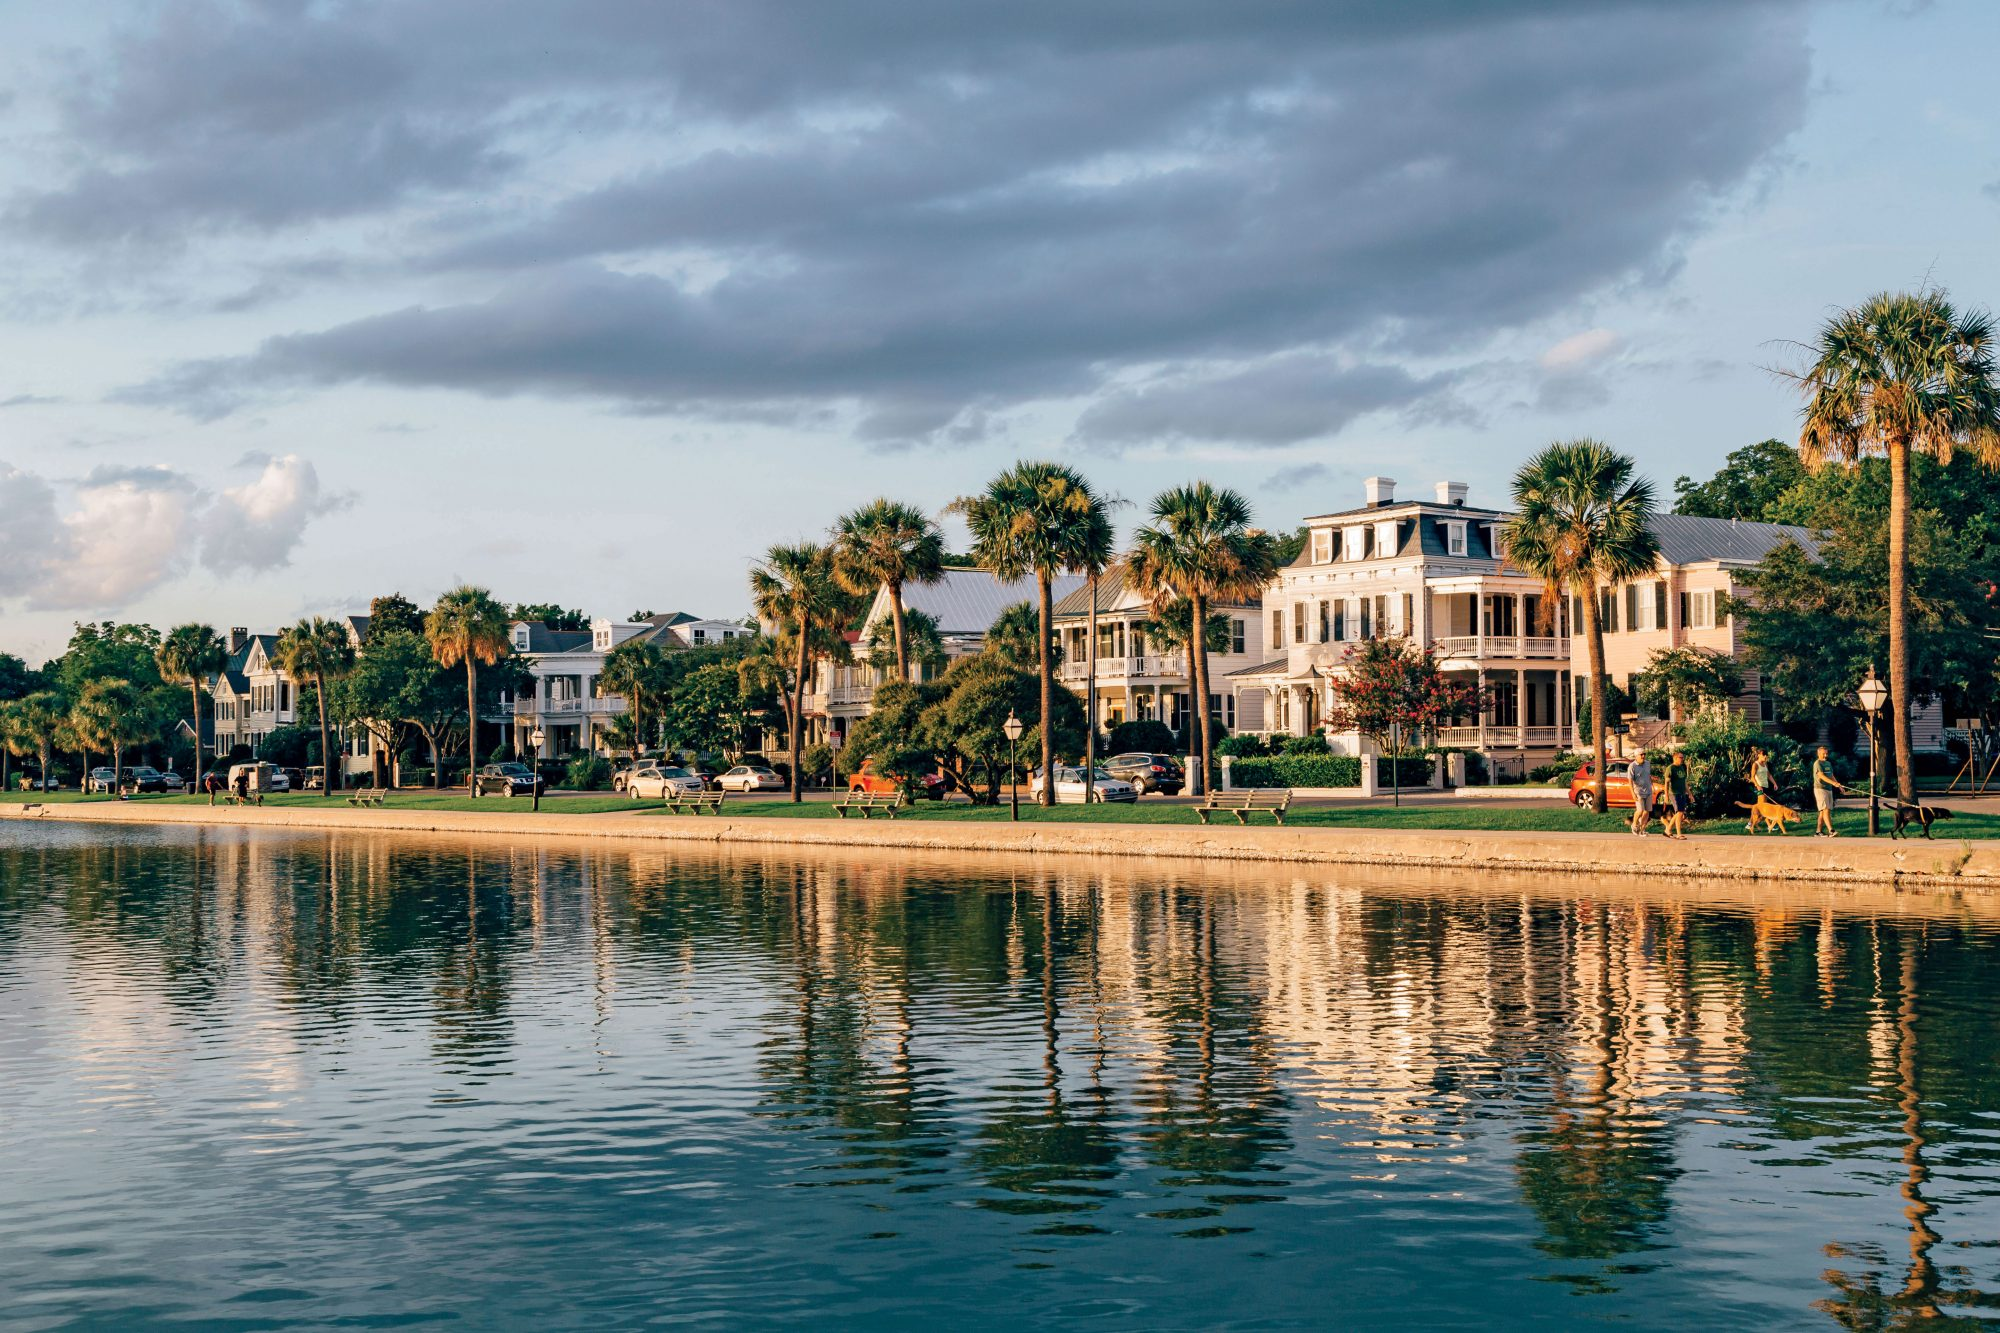 18. Charleston, South Carolina